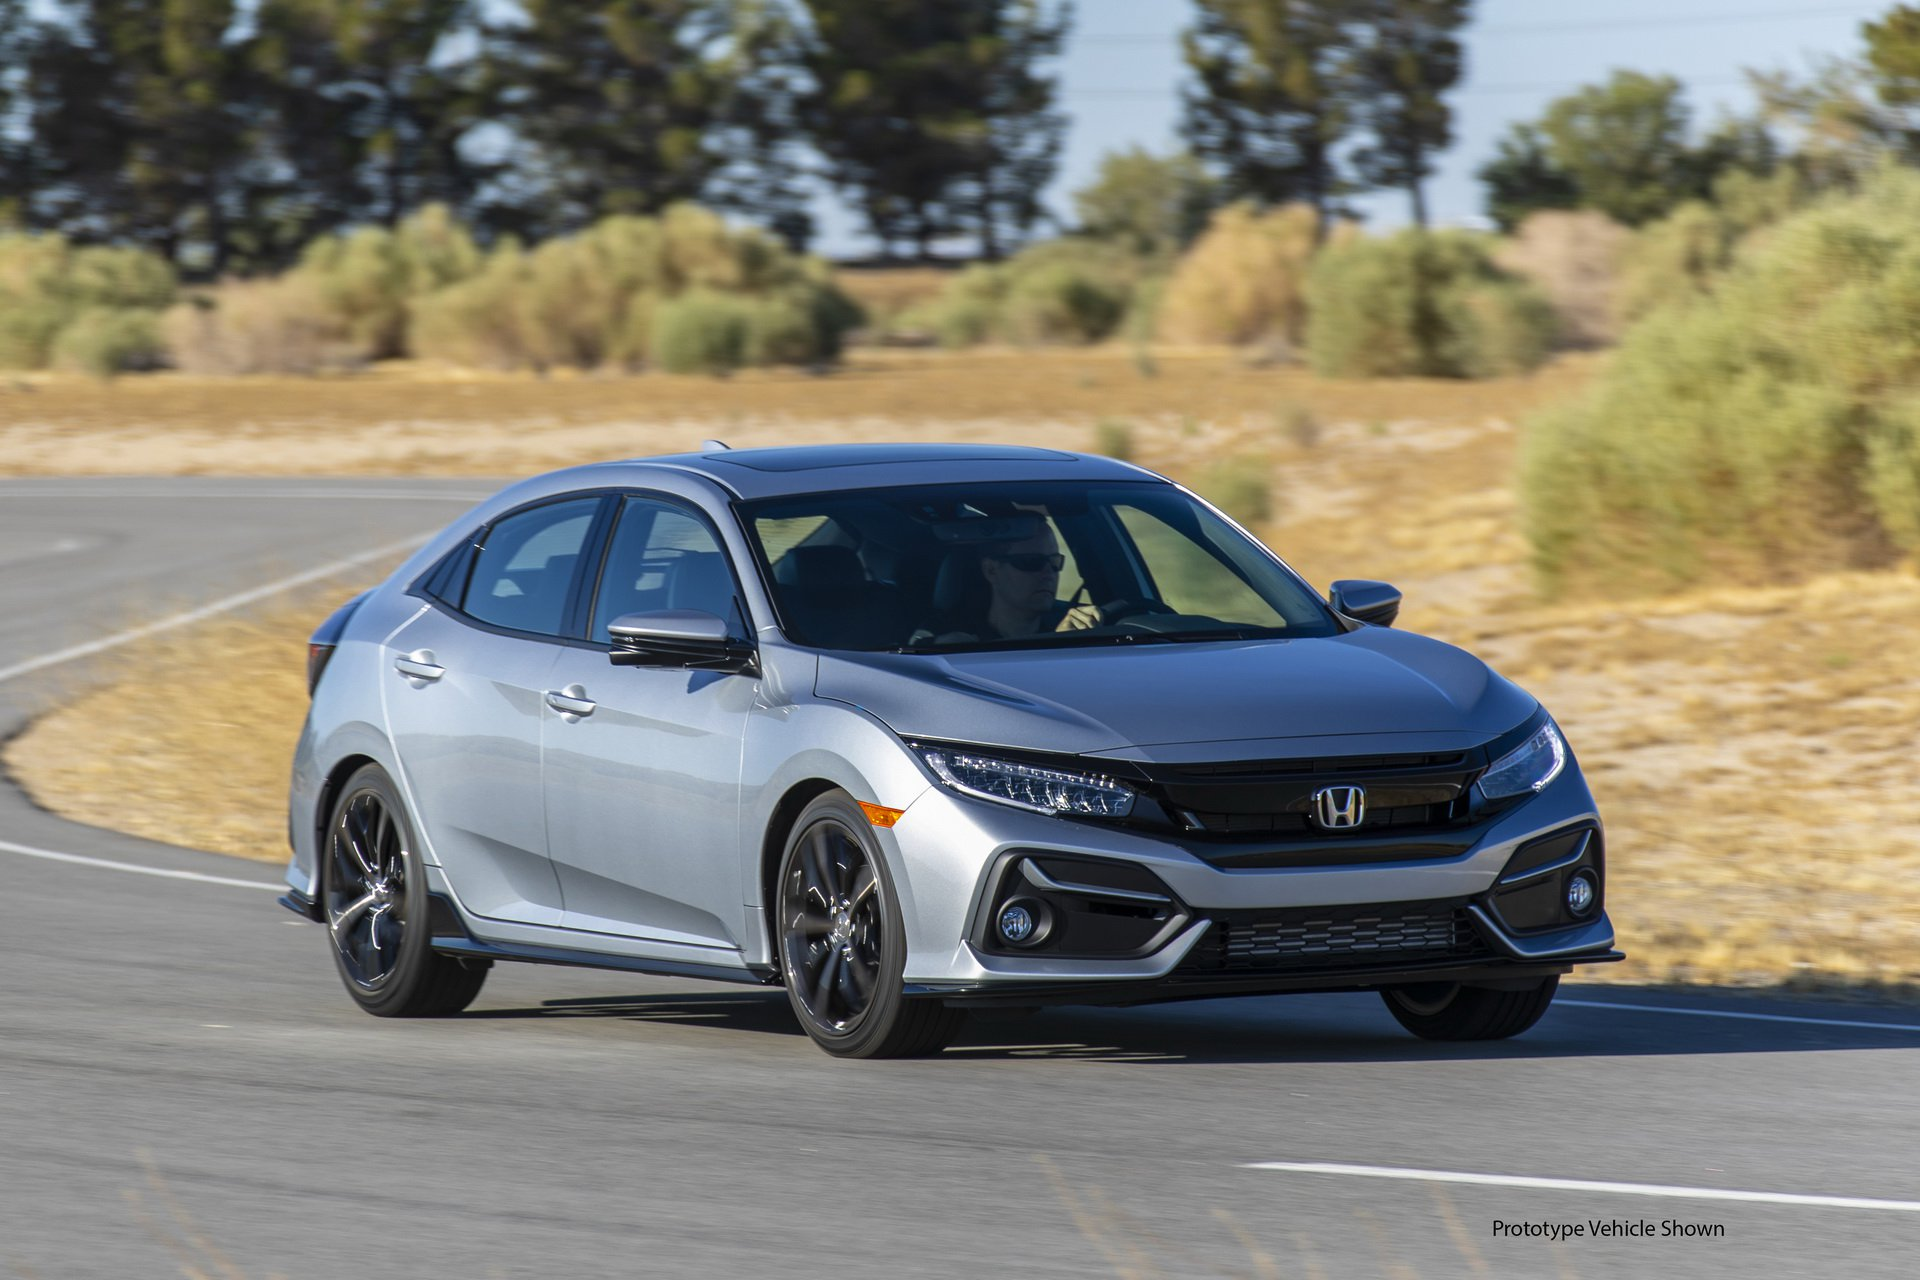 Honda Civic Hatchback Gets Mild Update, Small Price Bump